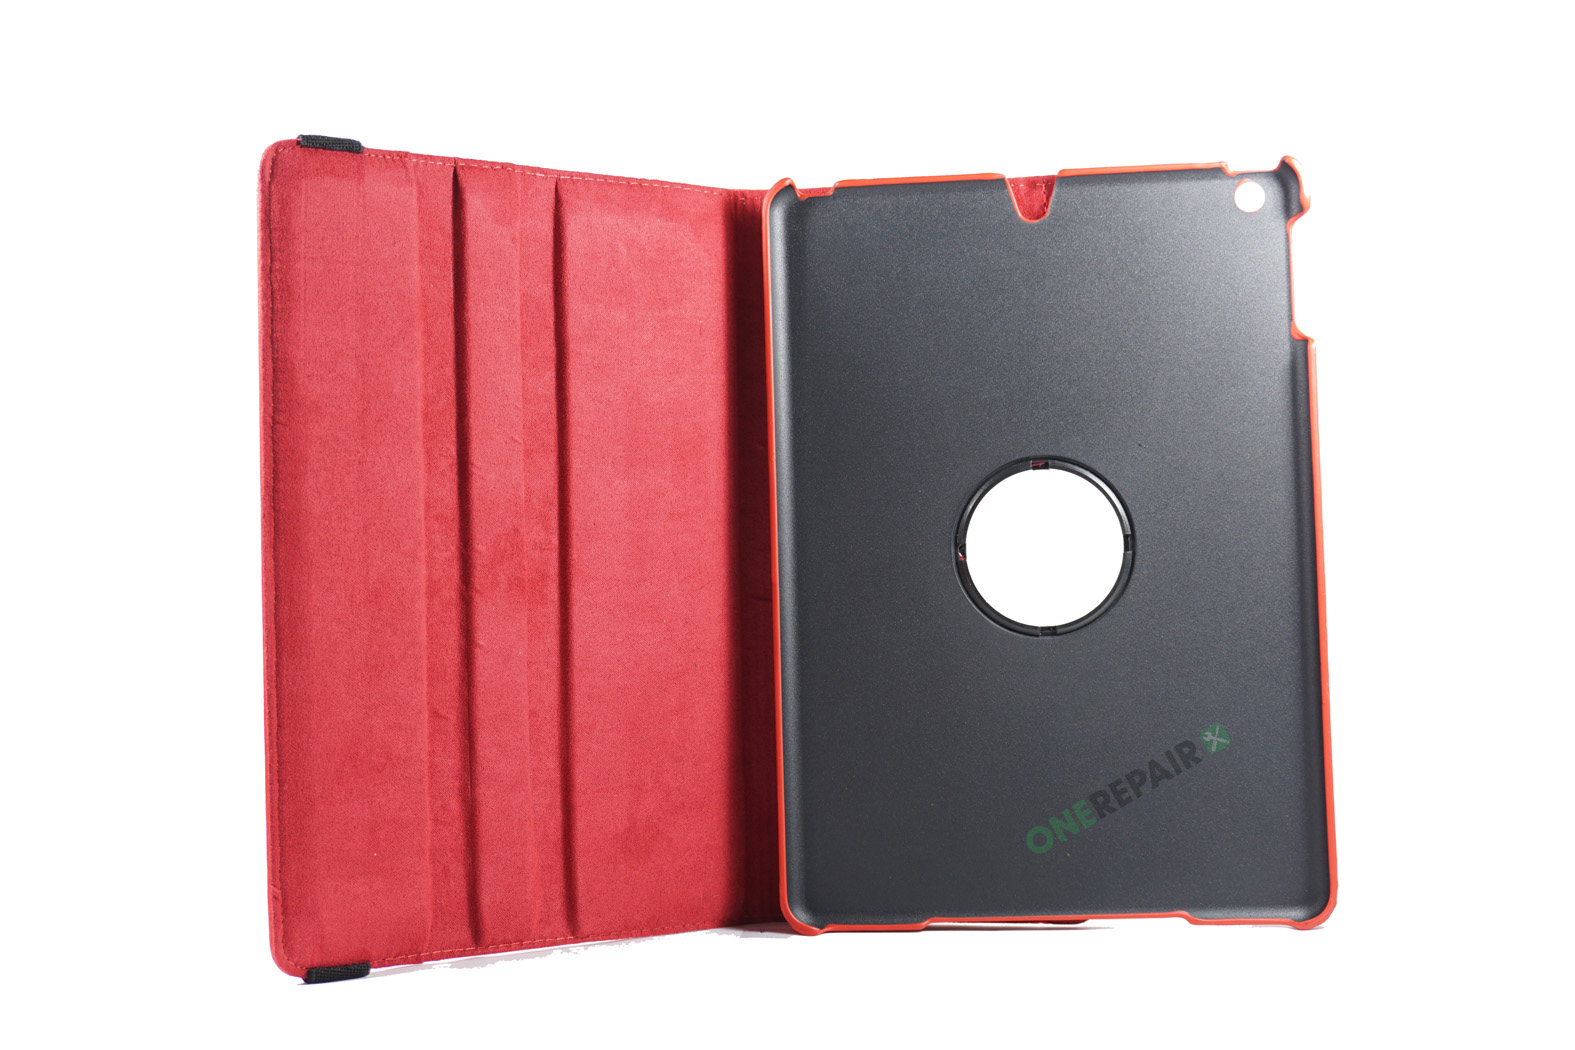 351016_iPad_Air_A1474_A1475_A1476_Flipcover_Cover_Roed_OneRepair_00003